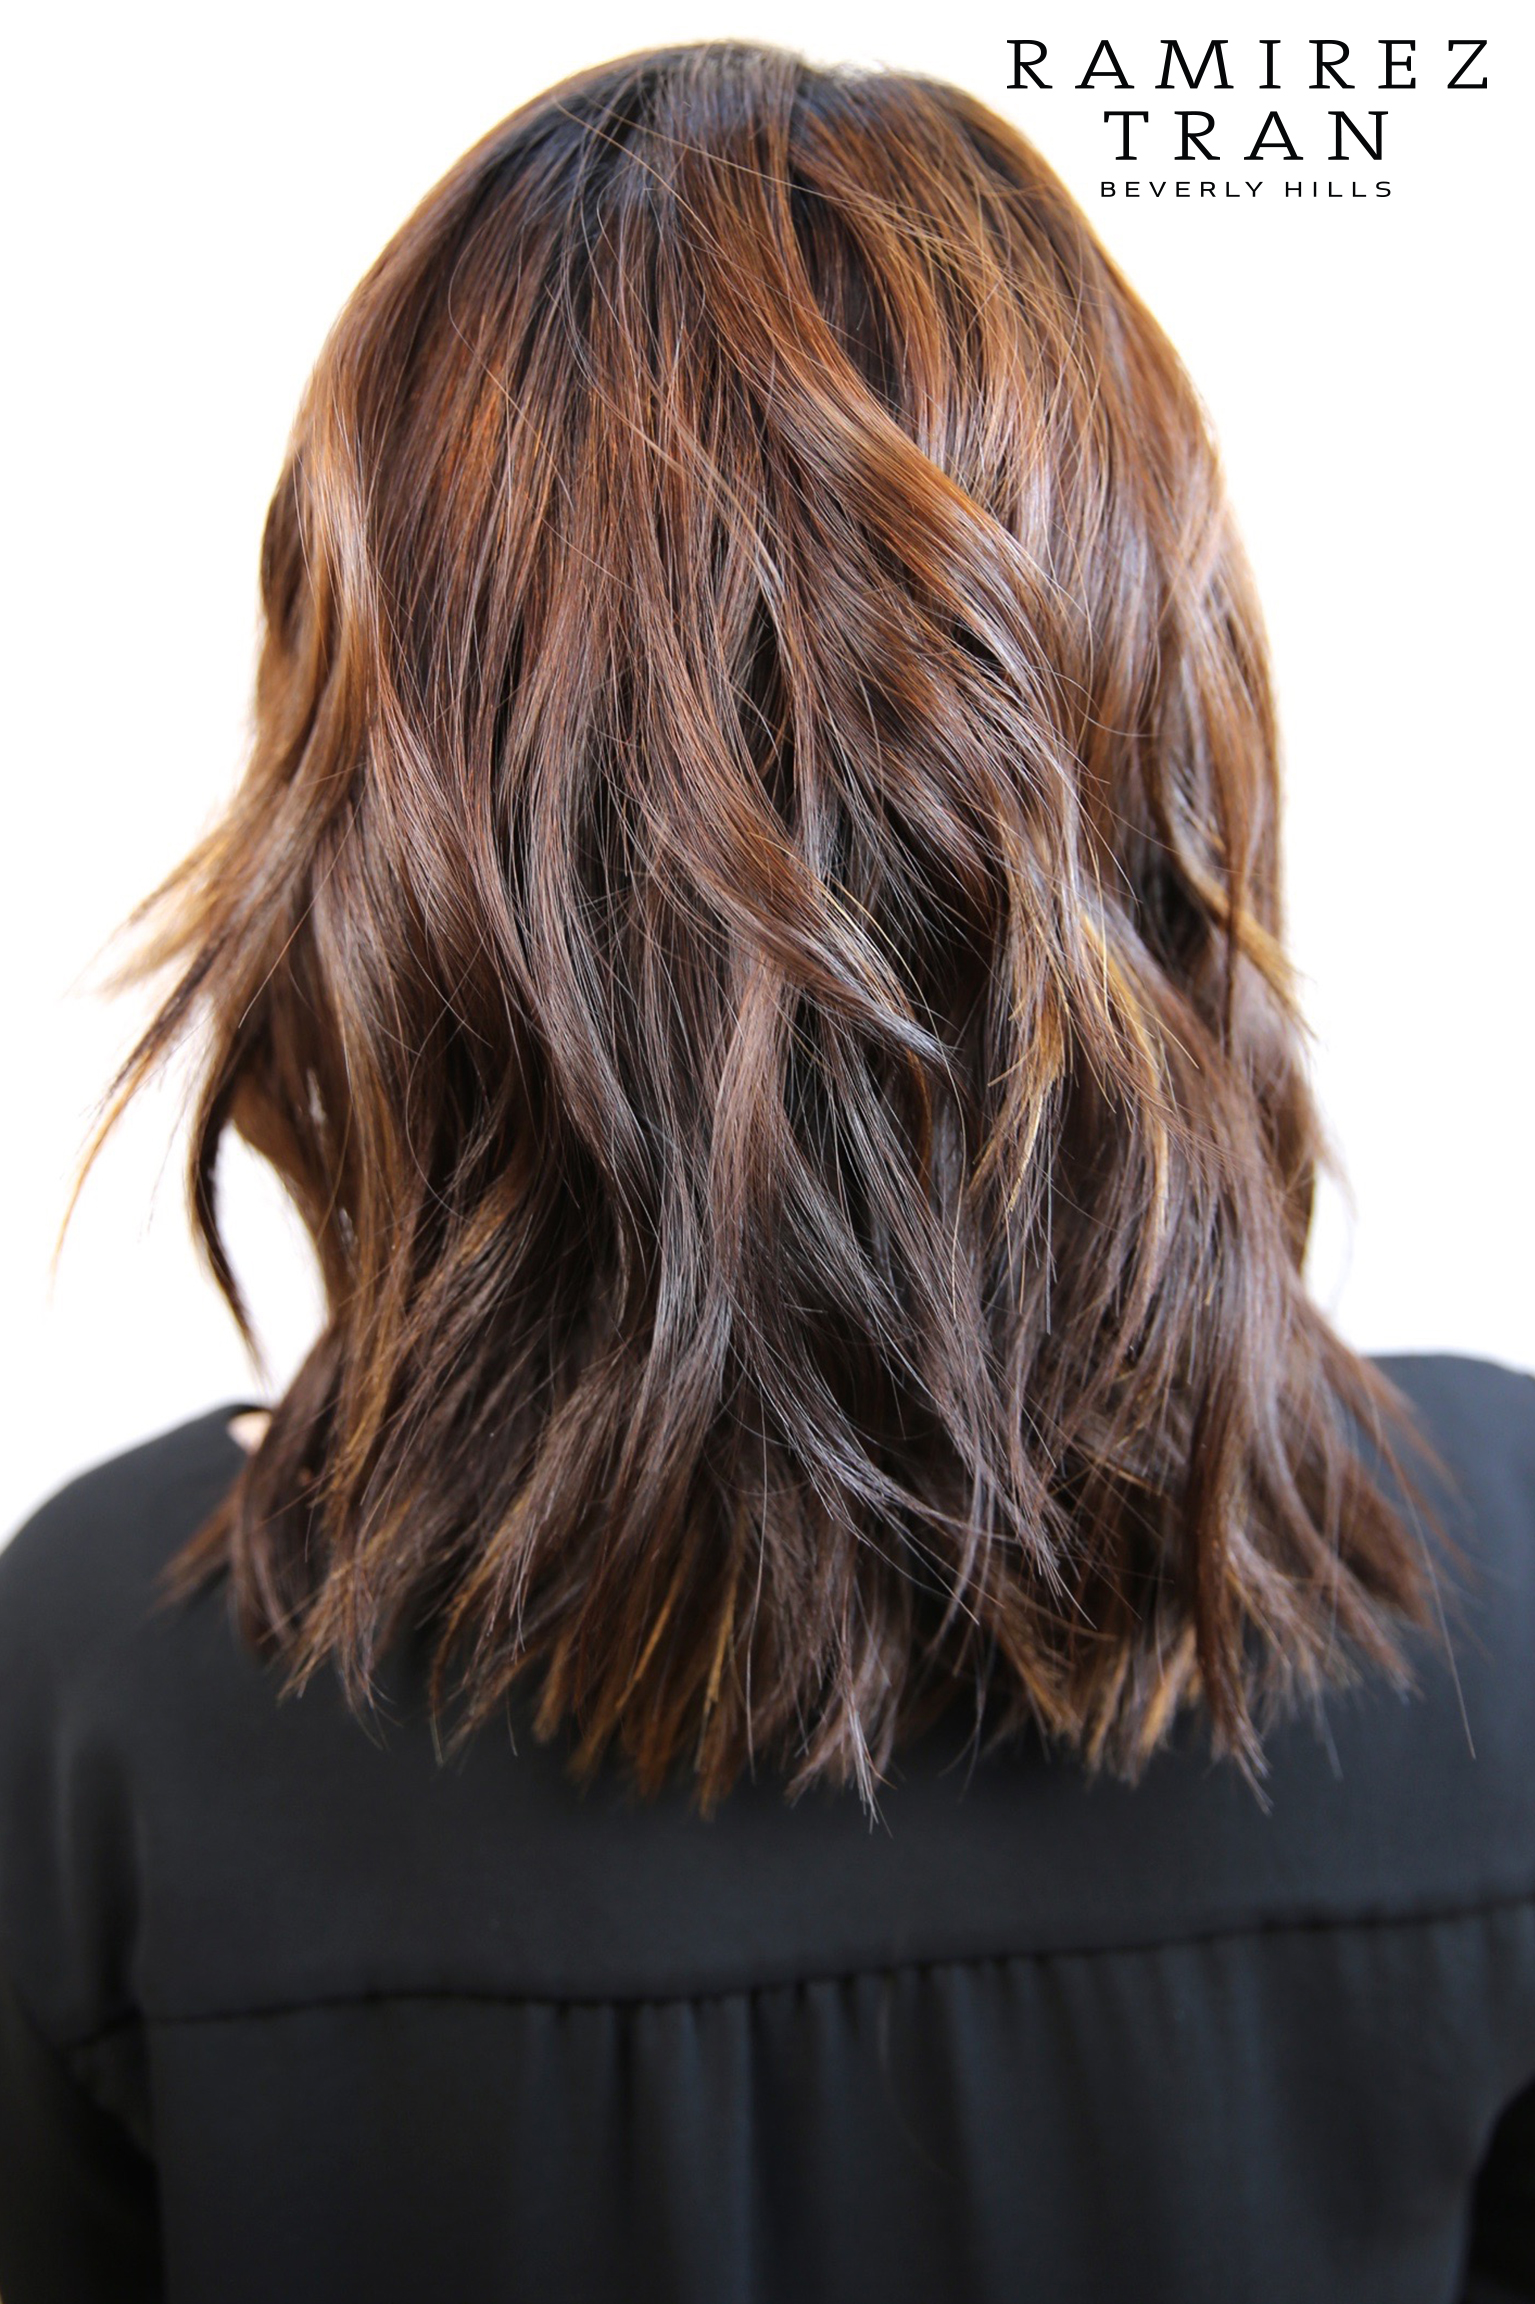 Subtle highlights on brunette hair archives ramirez tran salon 10 9 8 7 6 5 pmusecretfo Gallery